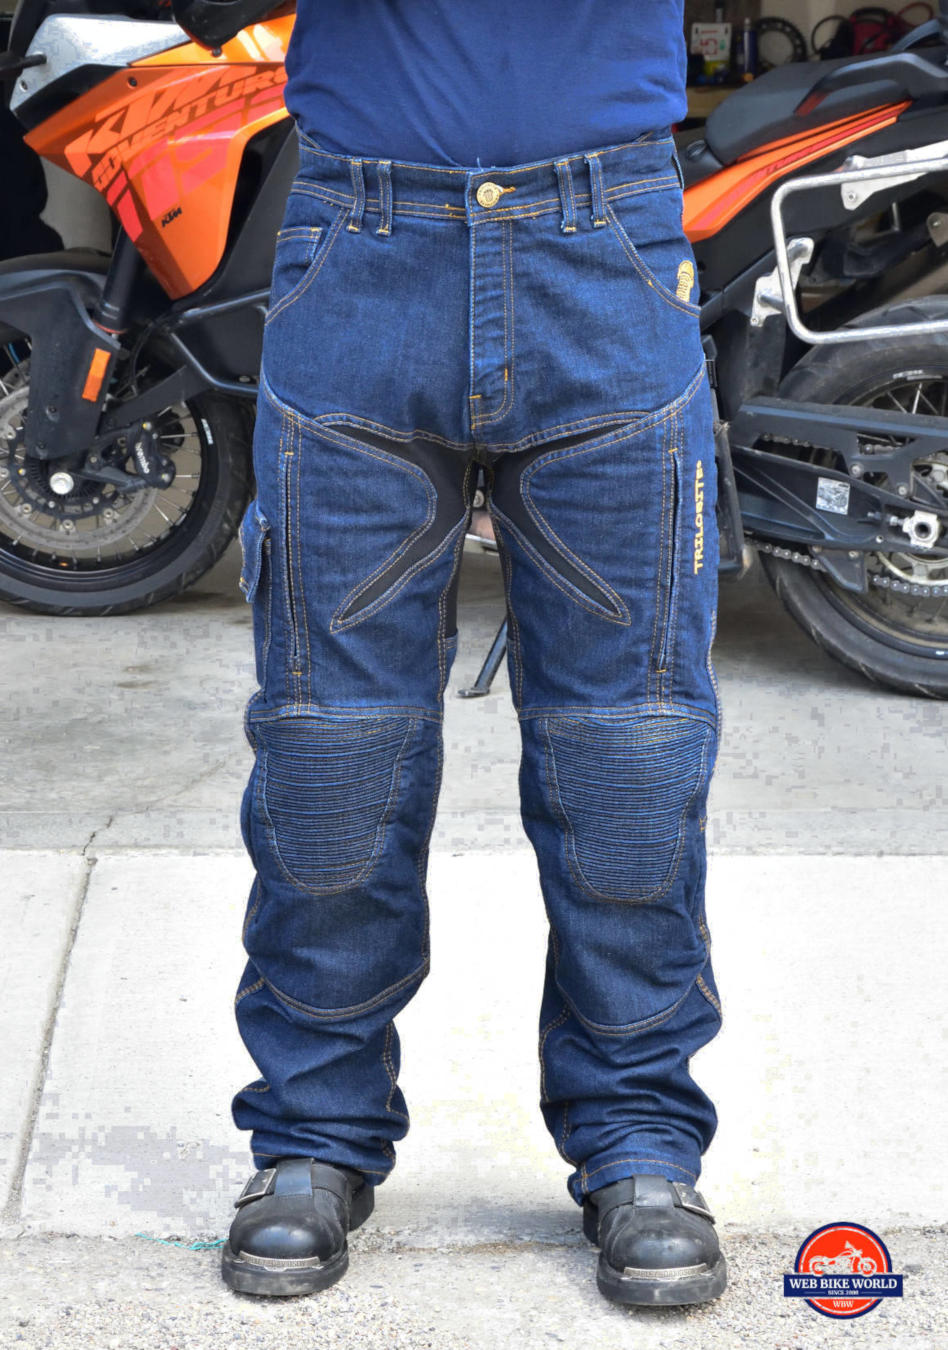 792180e8d24df6 Motorcycle Jeans Reviews Archives | webBikeWorld